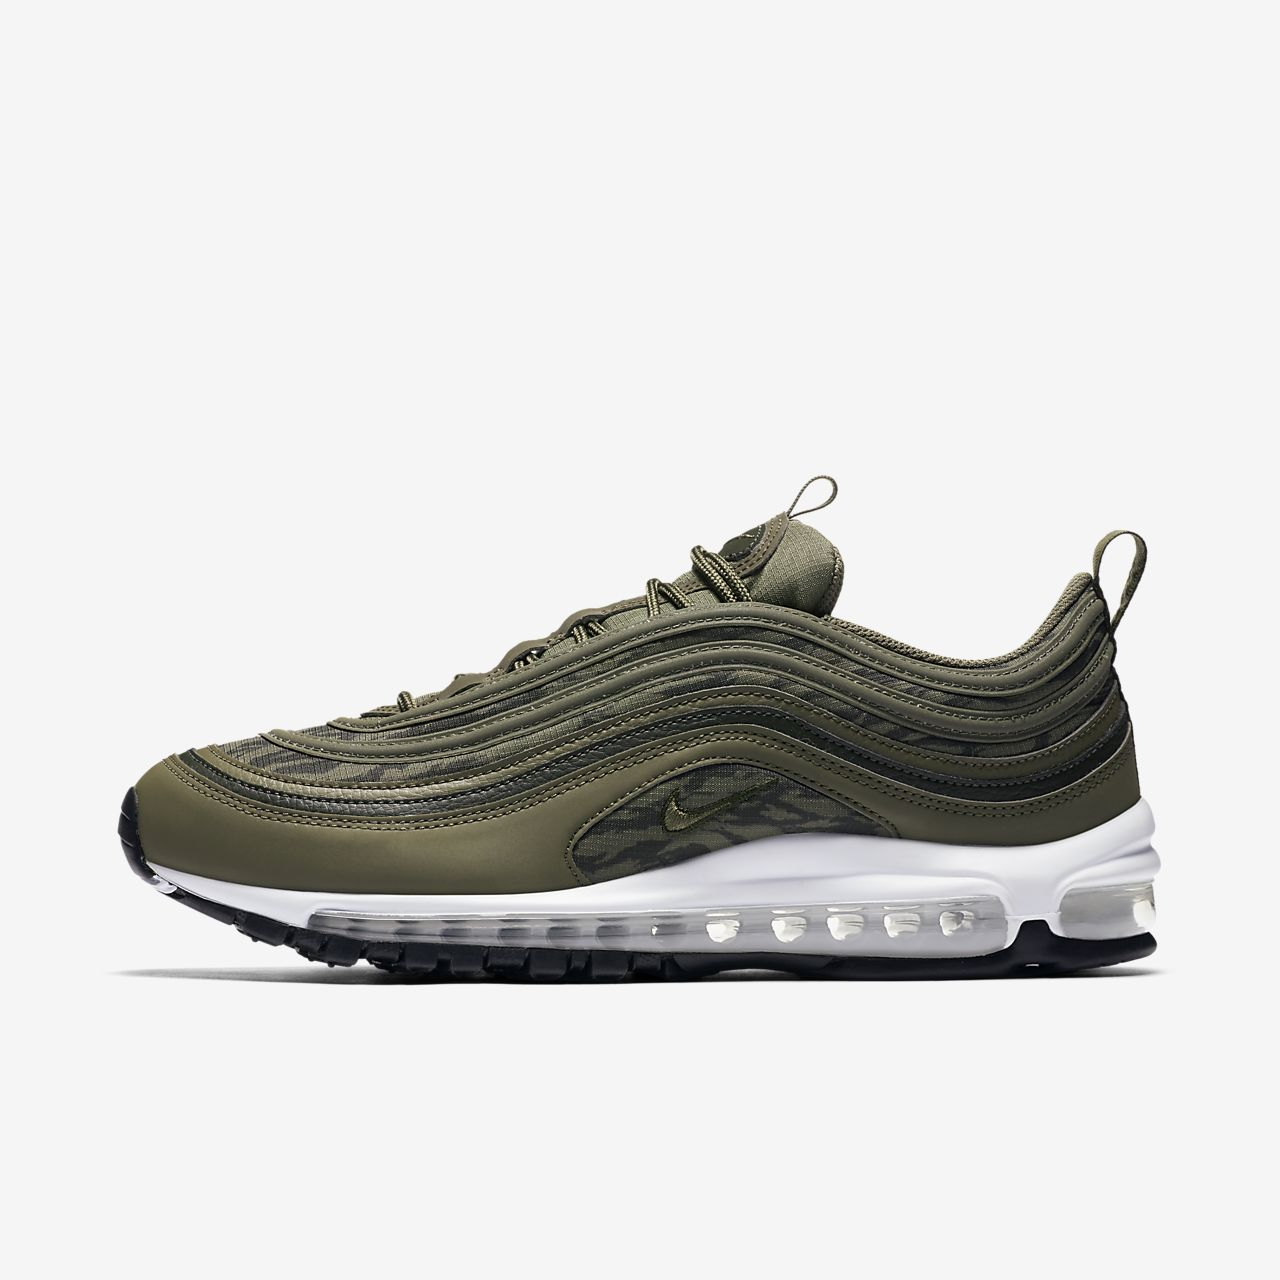 Nike Air Max 97 Medium OLIVA SEQUOIA nero da uomo